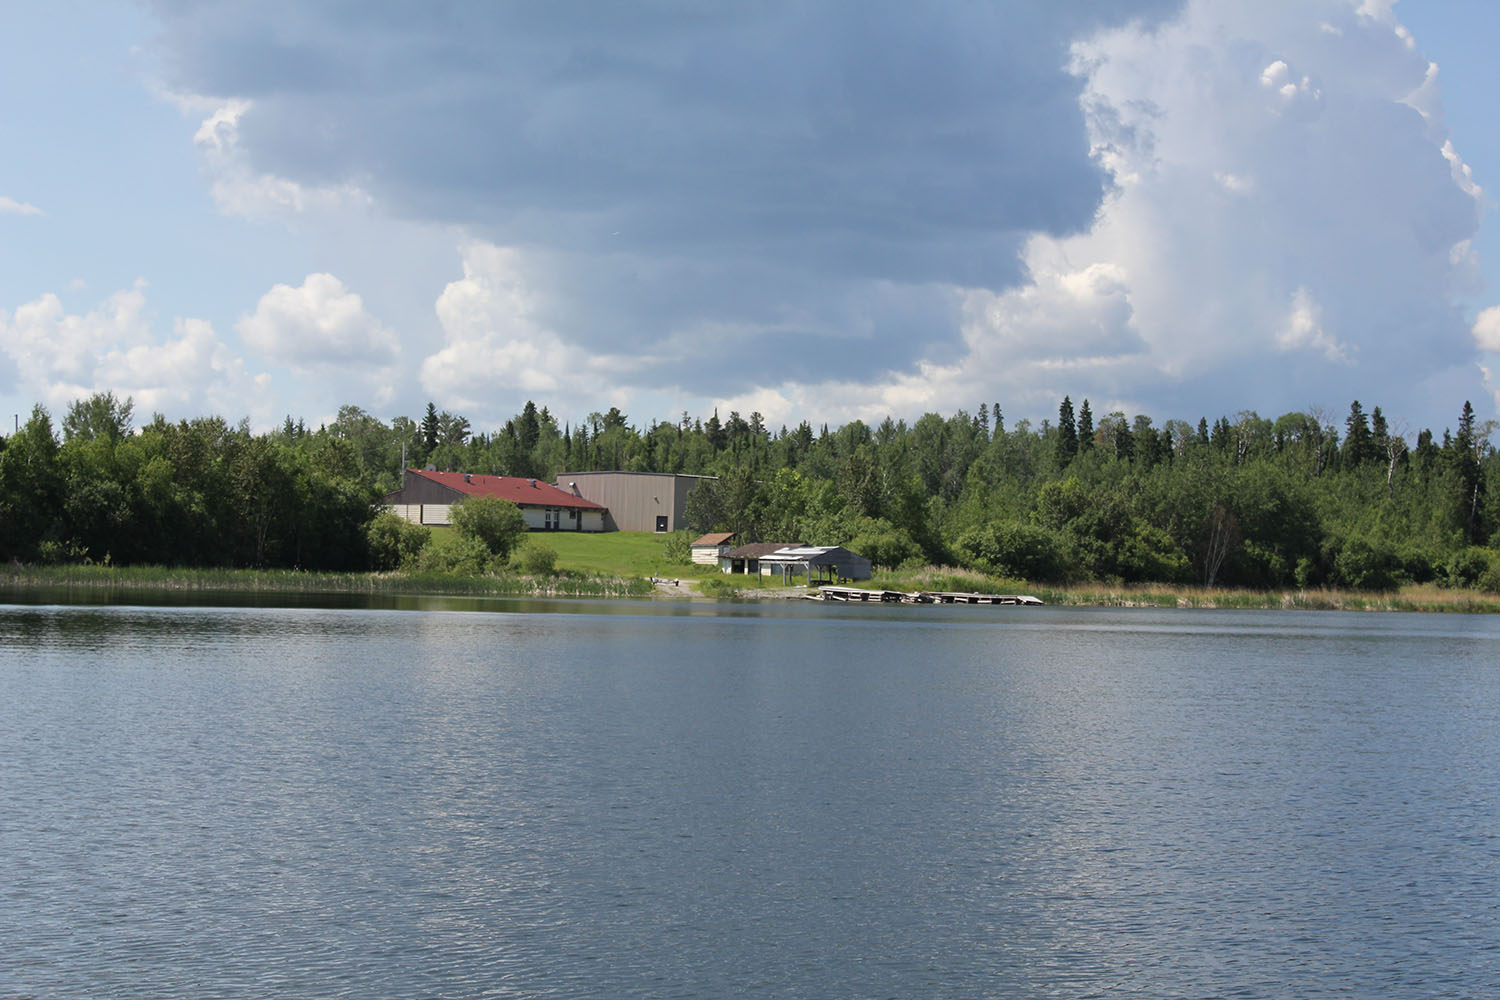 A view of Shoal Lake from the barge which residents use to cross over to the mainland.